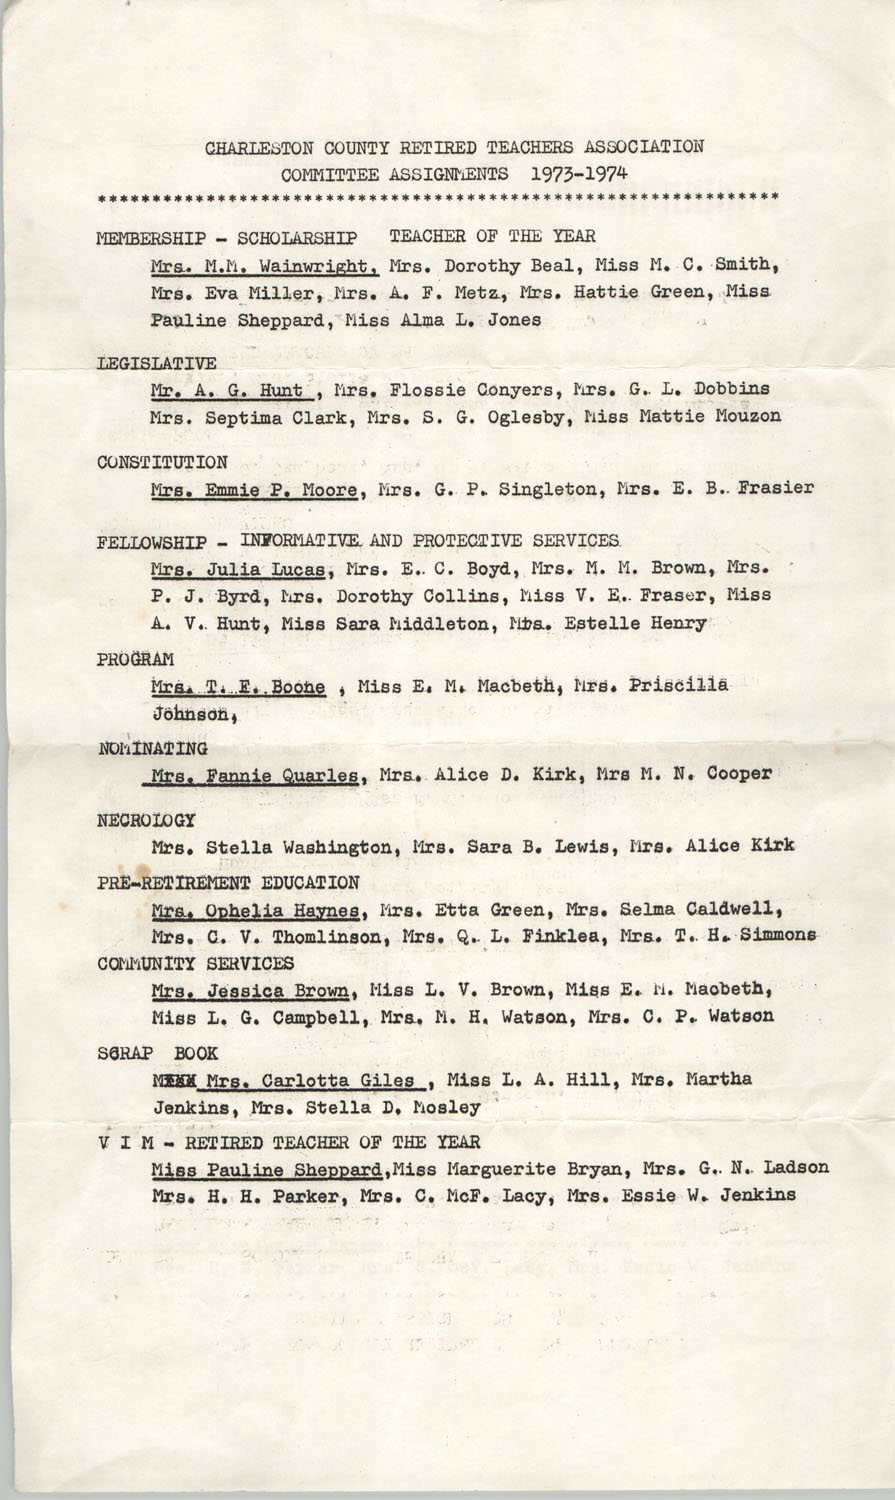 Charleston County Retired Teachers Association Committee Assignments 1973-1974